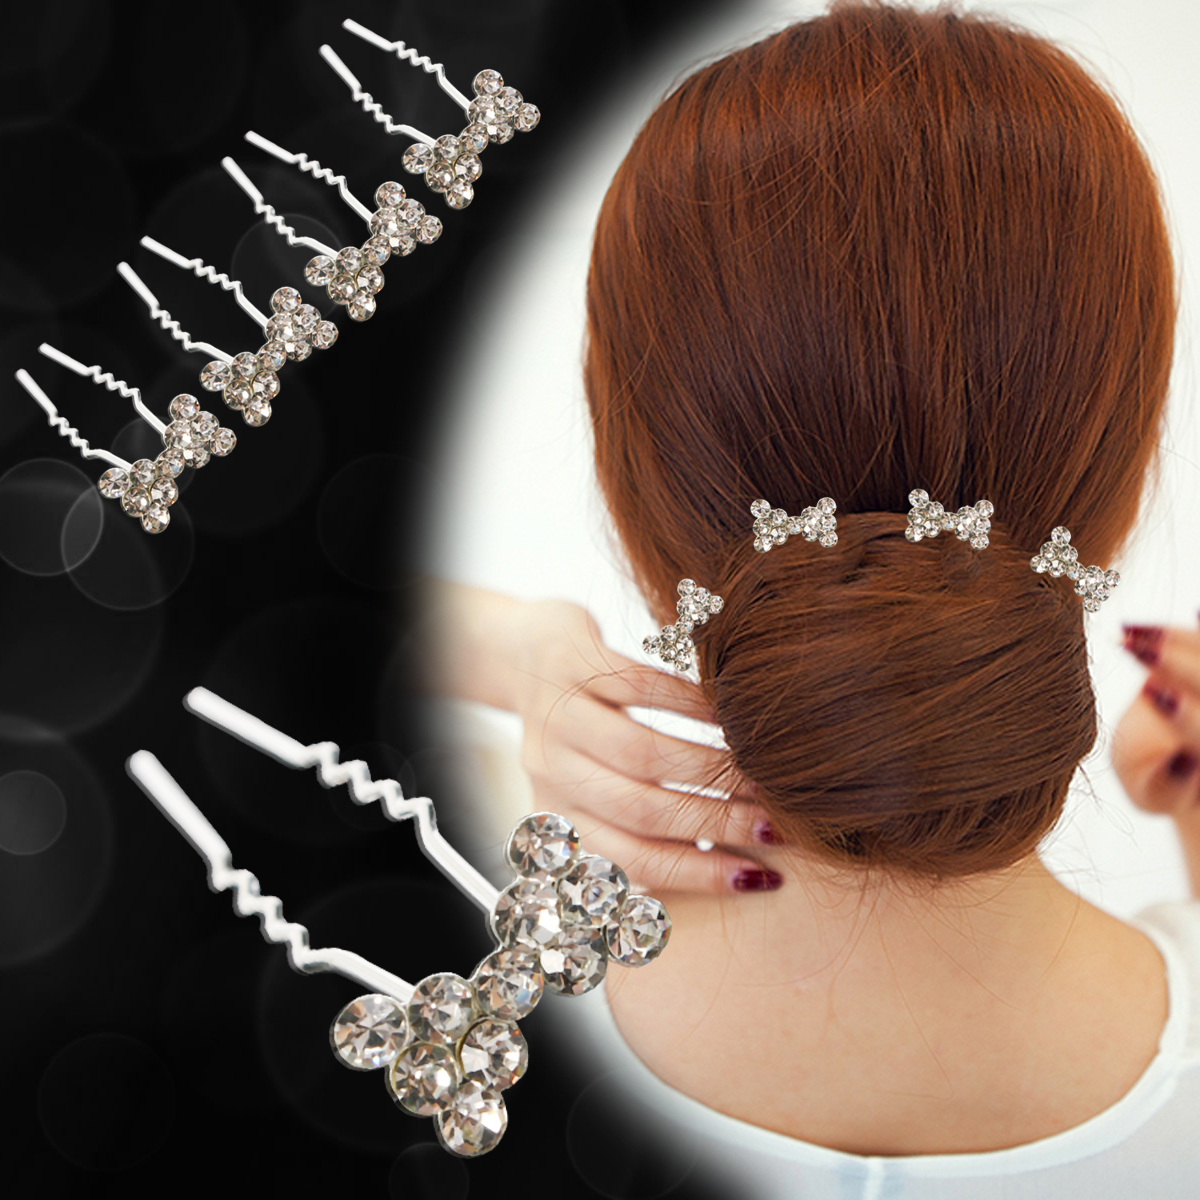 20Pcs Women's Bridal Pearl Rhinestone Decorated U-Shaped Hairpins Hair Clips